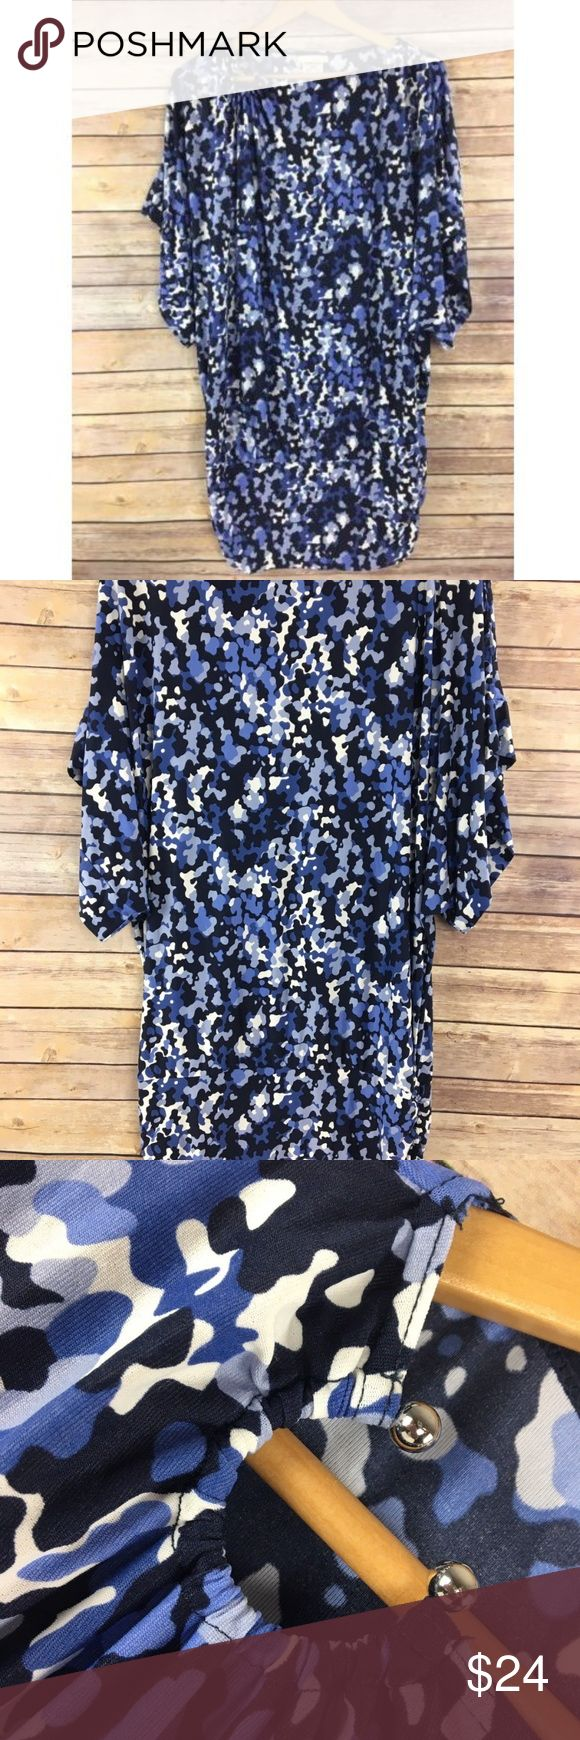 """Michael Kors Dress S Small Blue Camo Loose Fit Michael Kors Dress S Small Blue Camo Loose Fit Stretch H77 Gently used condition, no holes or stains, soft fabric Measures 25"""" from armpit to armpit lying flat, 35"""" length (shoulder to hem) Michael Kors Dresses Mini"""